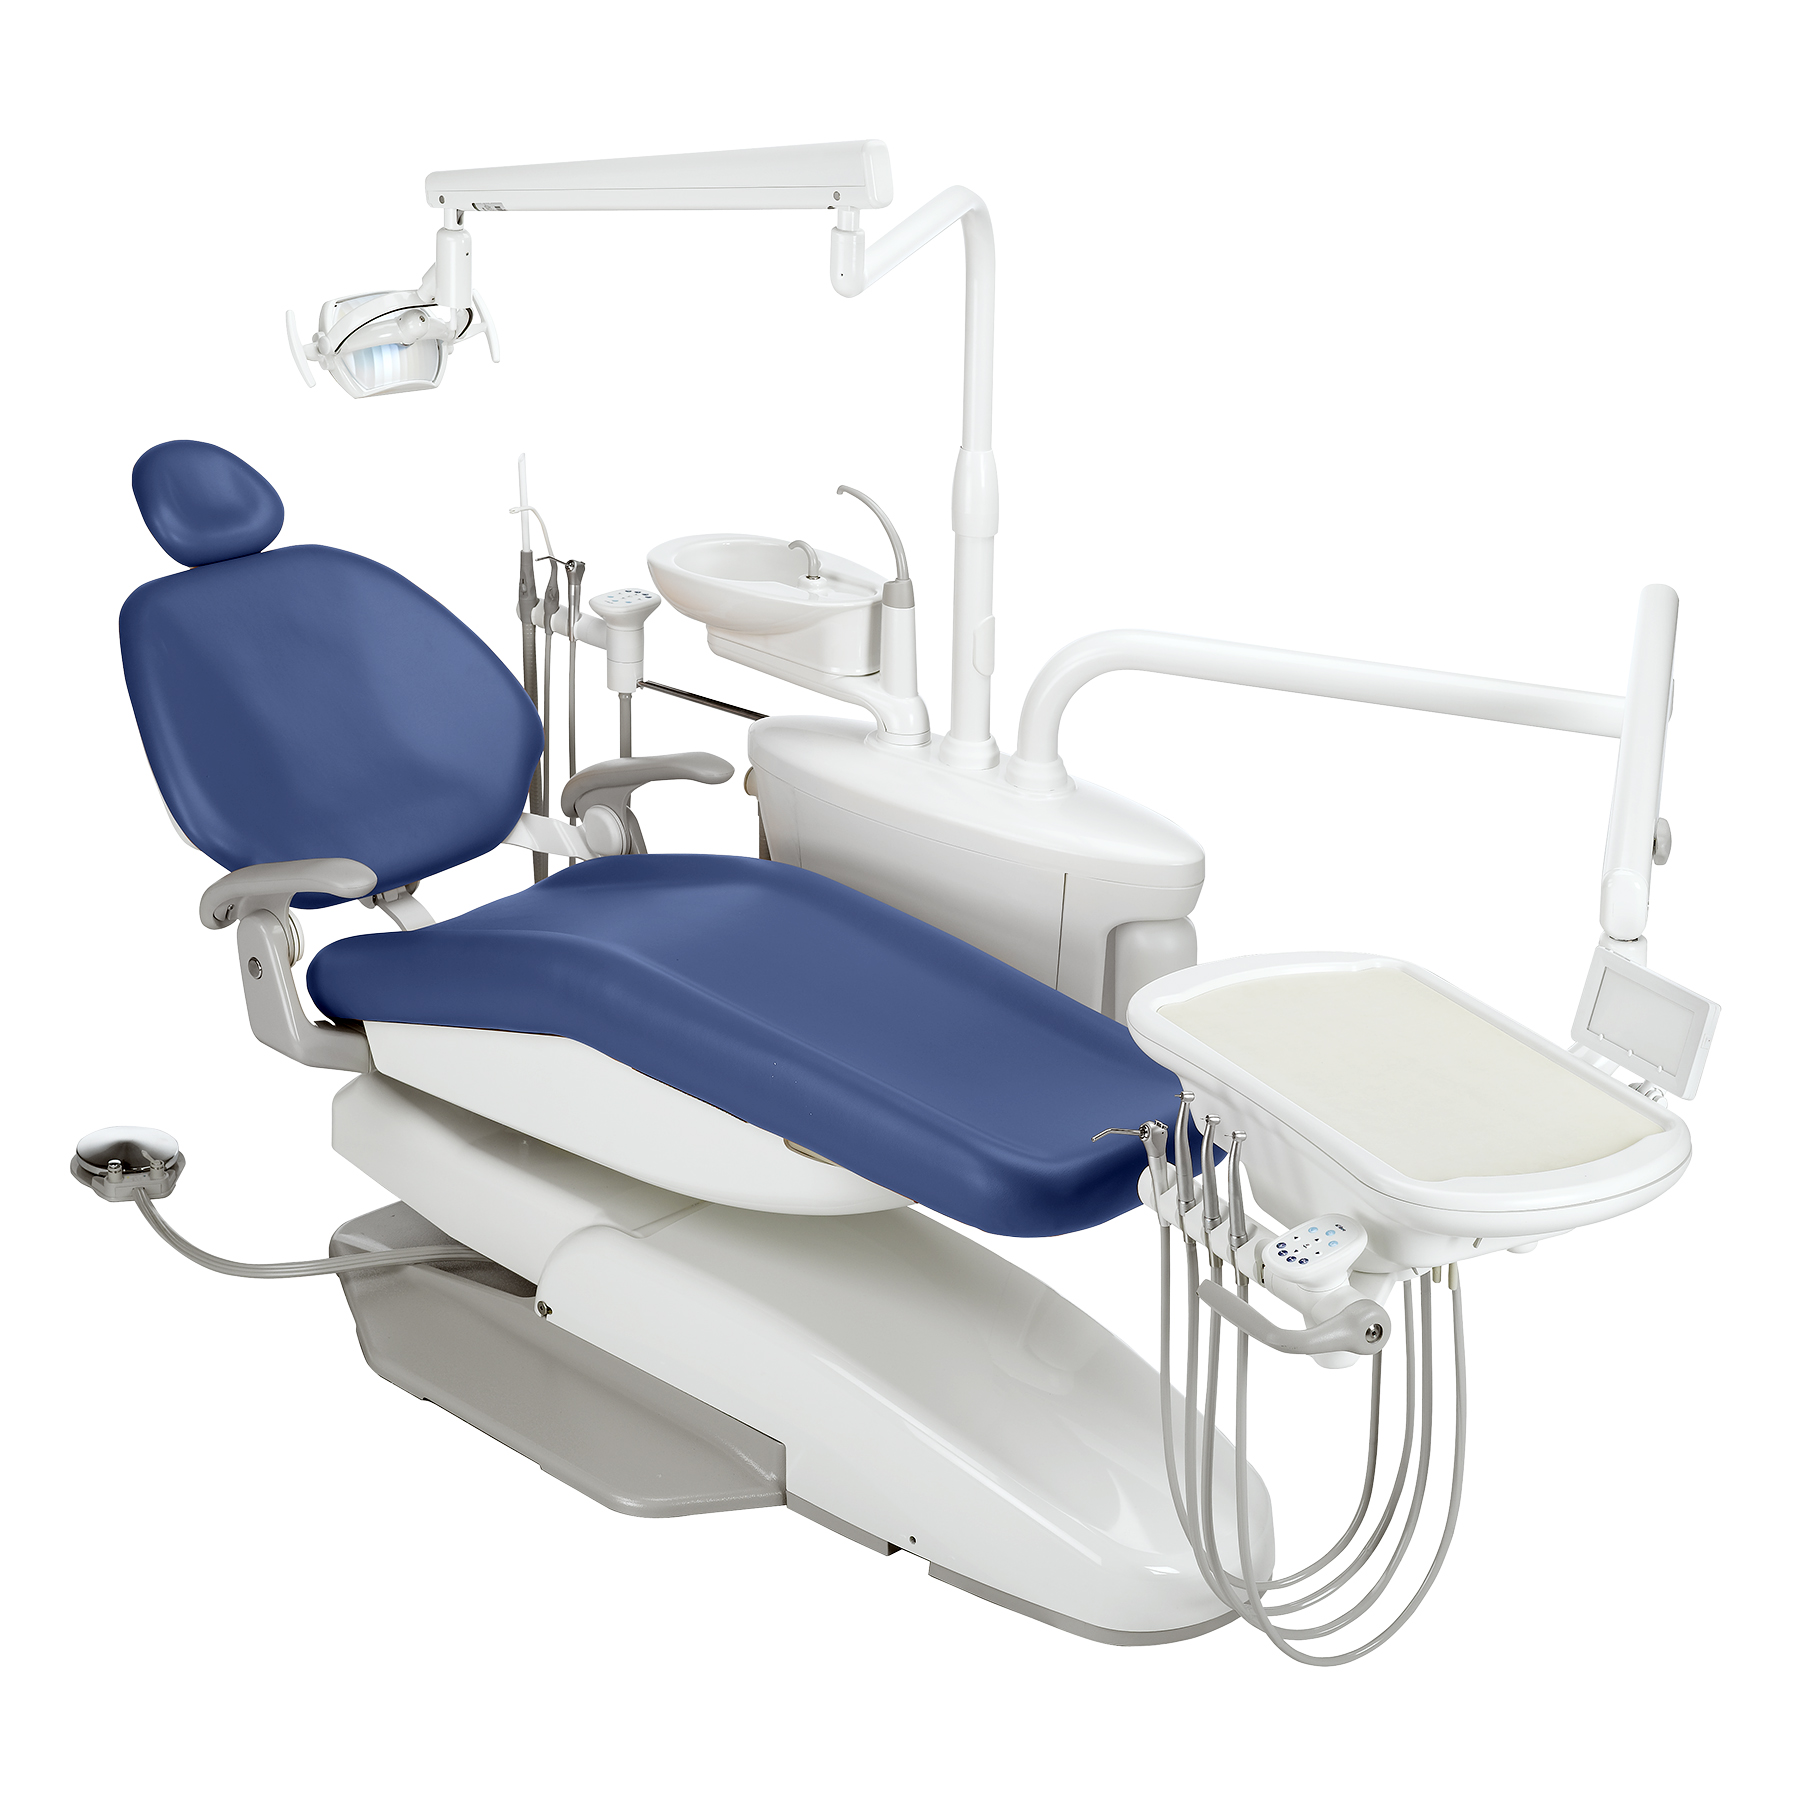 Image of A-Dec 200 Chair